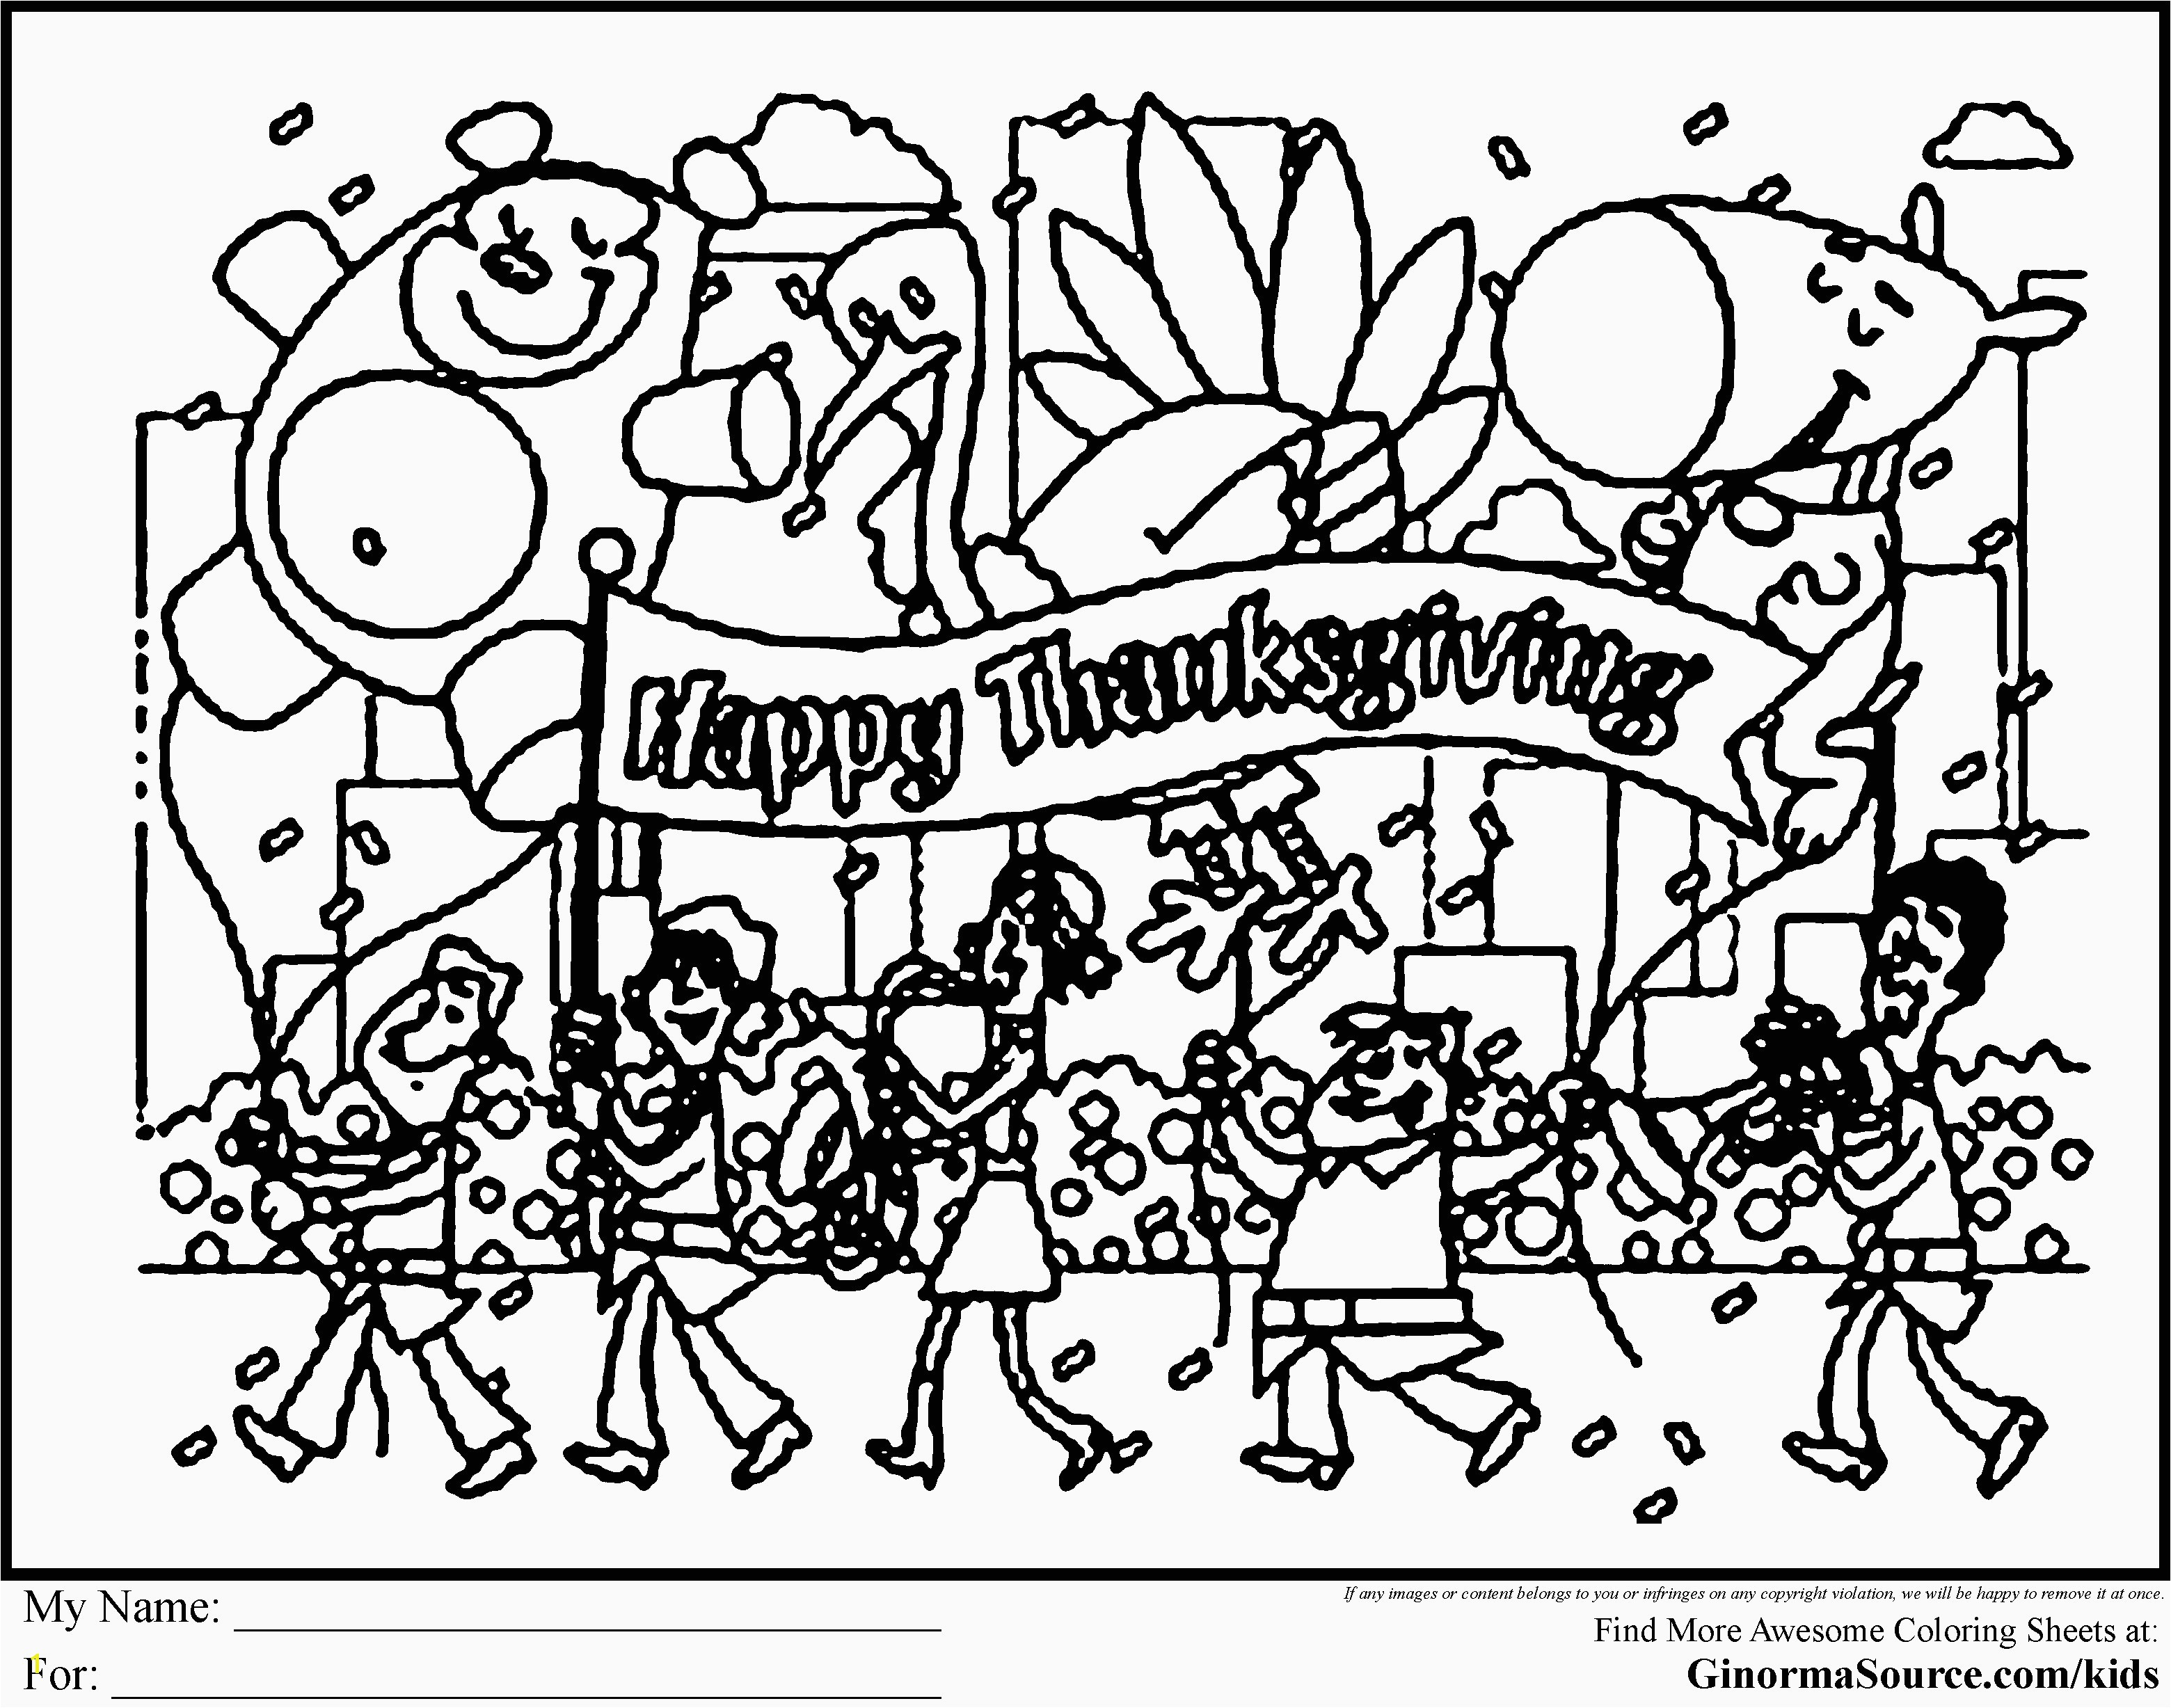 Fall Coloring Sheets Awesome Cool Vases Flower Vase Coloring Page Pages Flowers In A top I